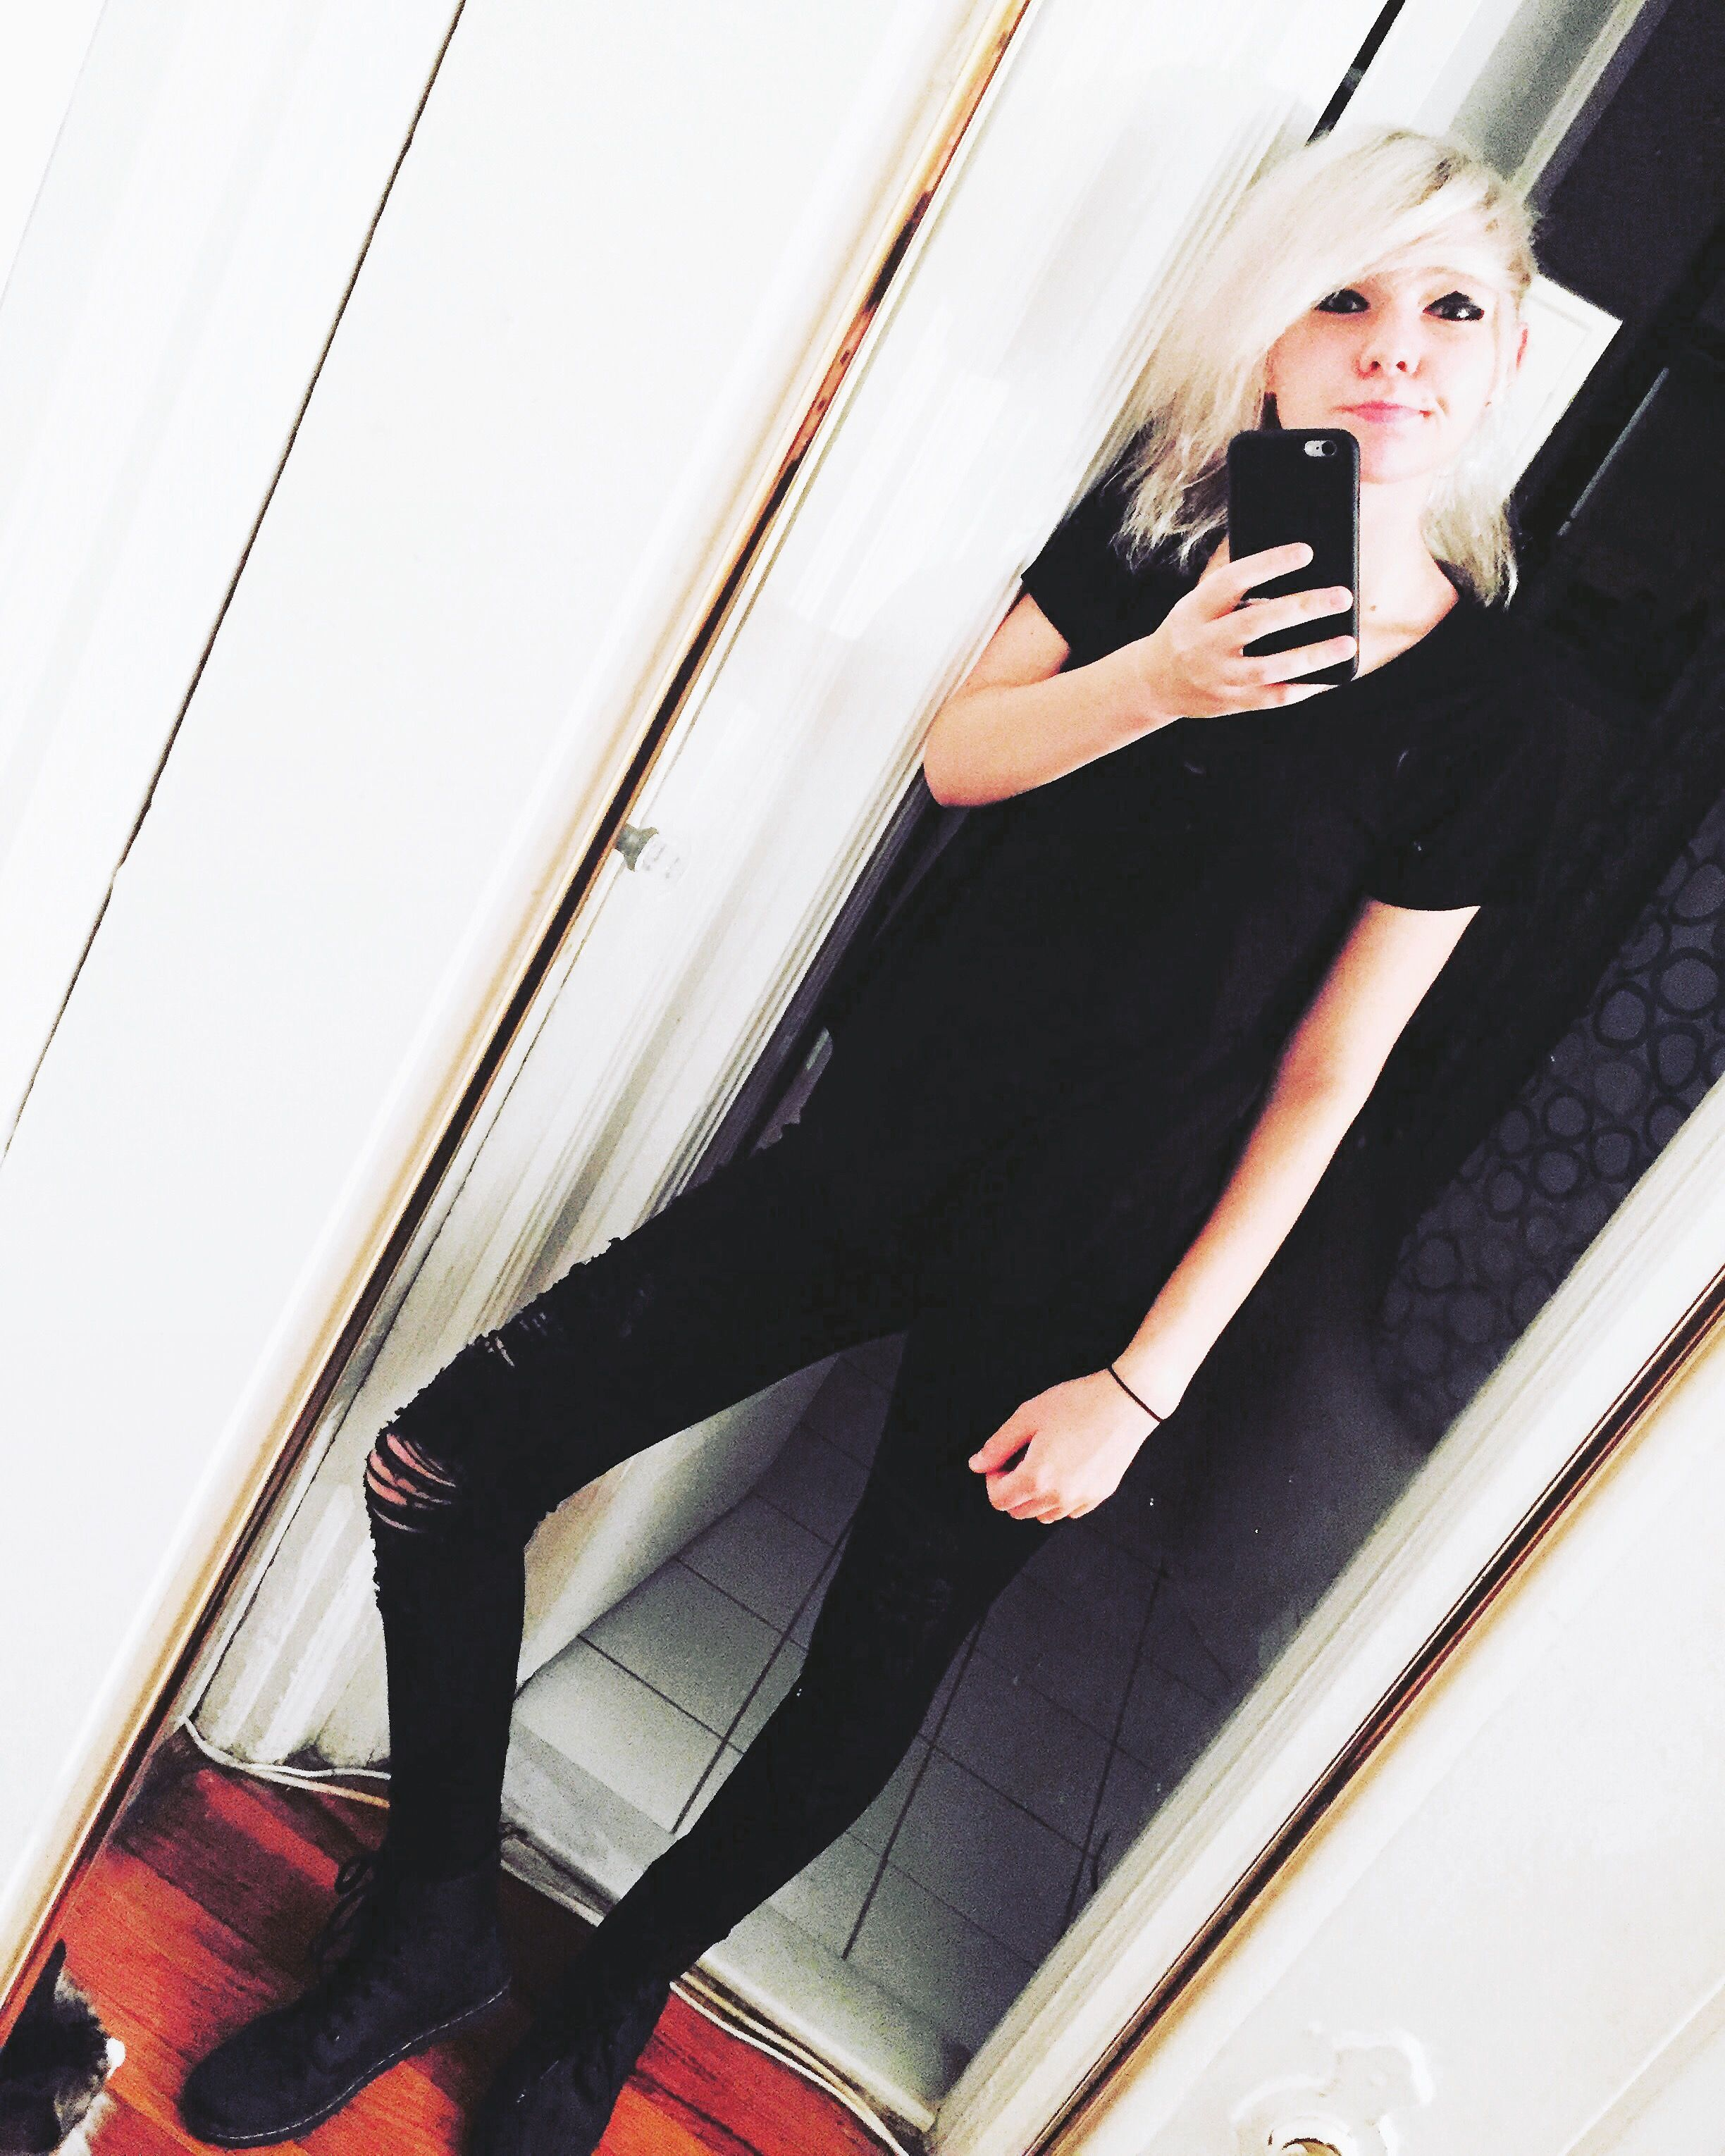 Pin by gelare imani on emo pinterest emo scene emo and dyed hair